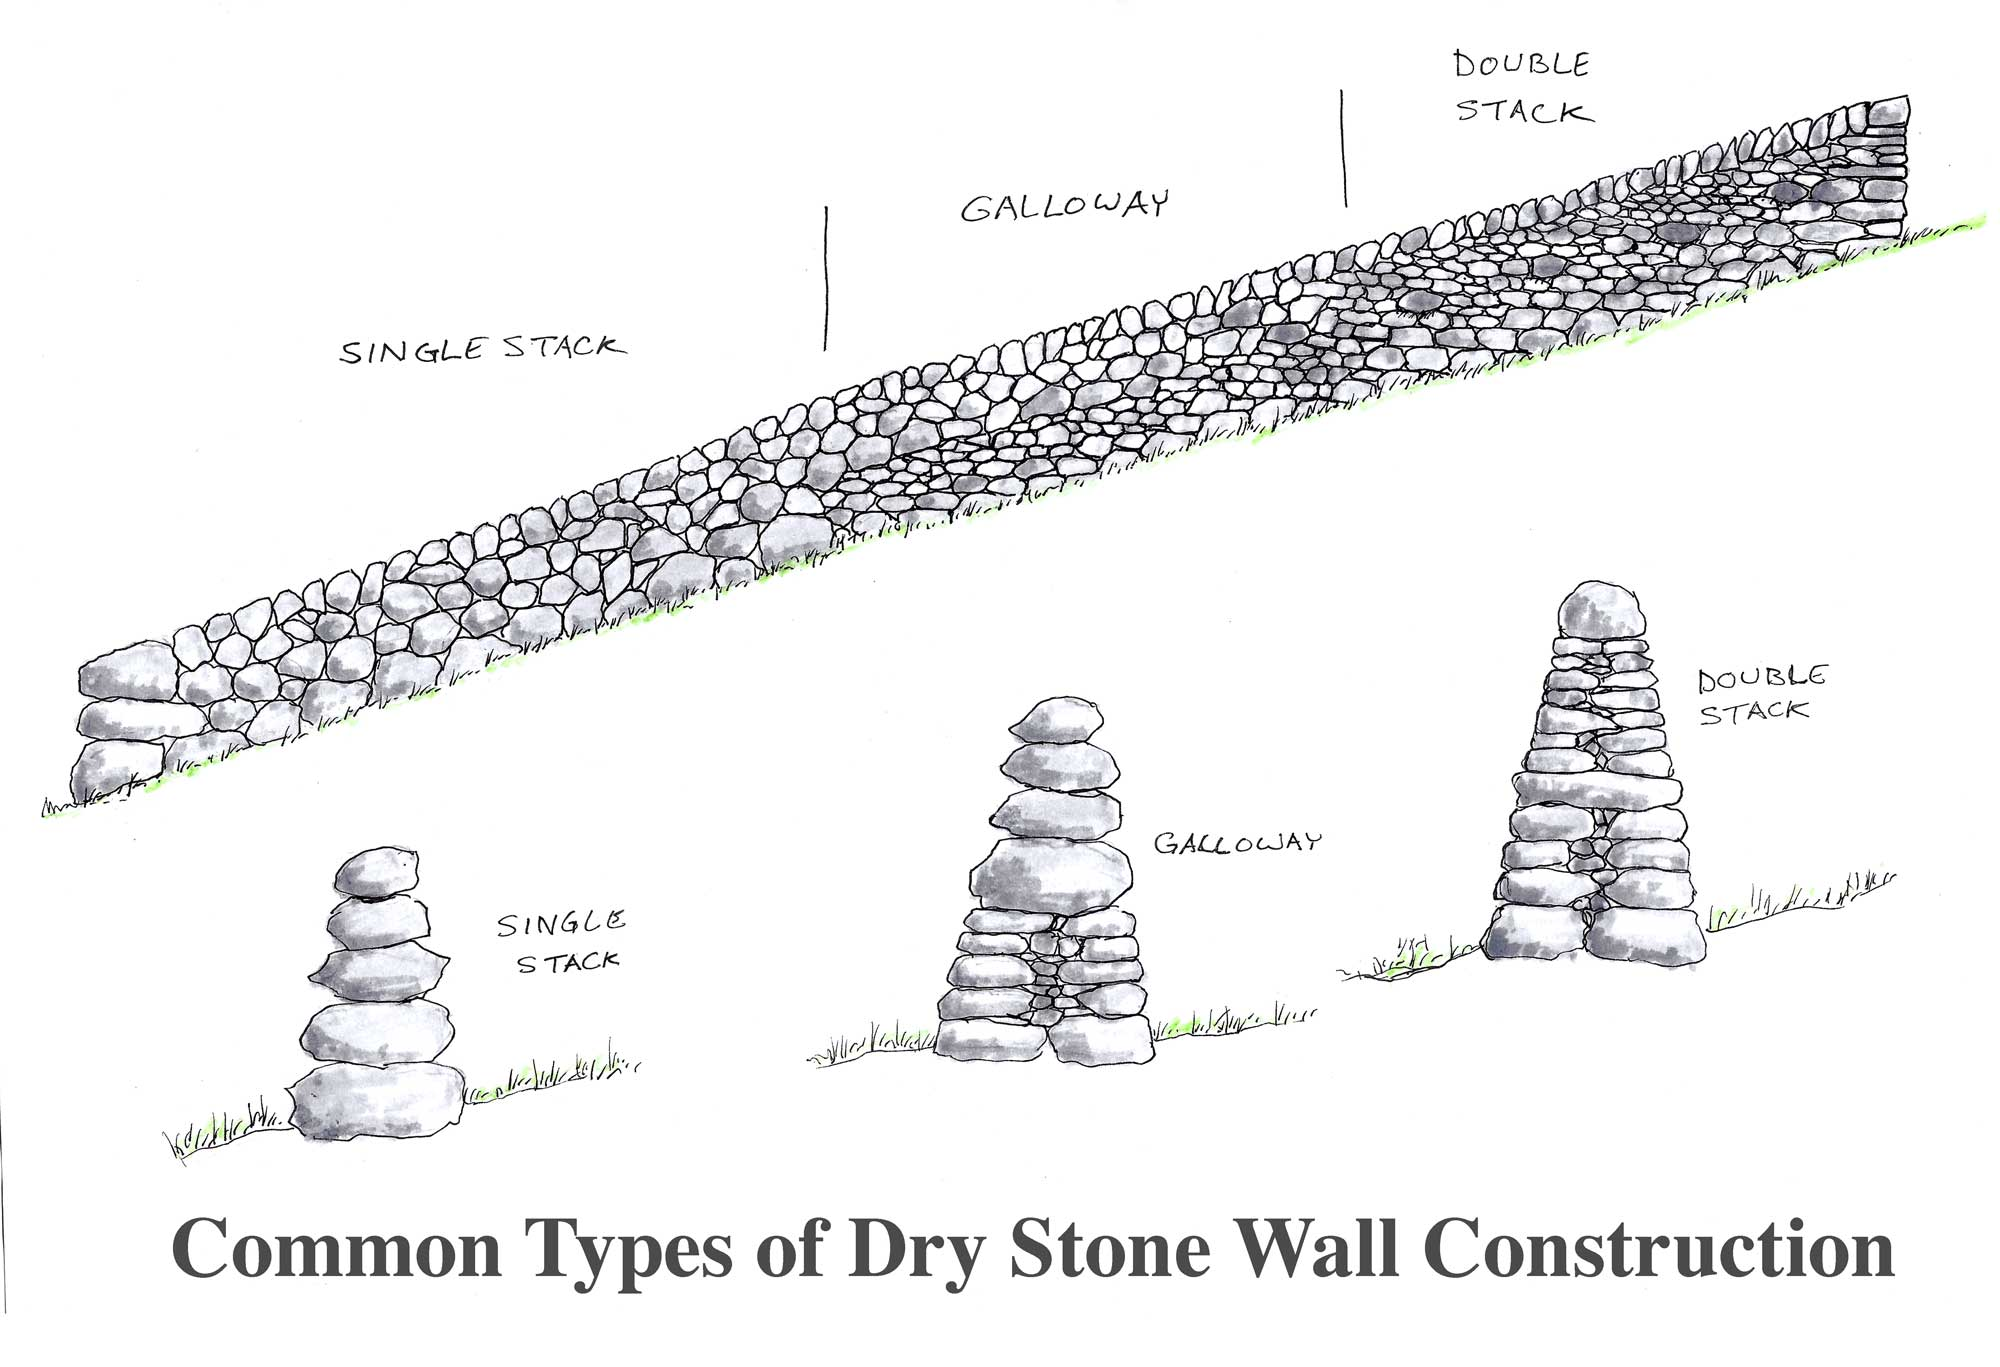 The 3 Common types of Dry Stone Walls - drawn by Brian Post